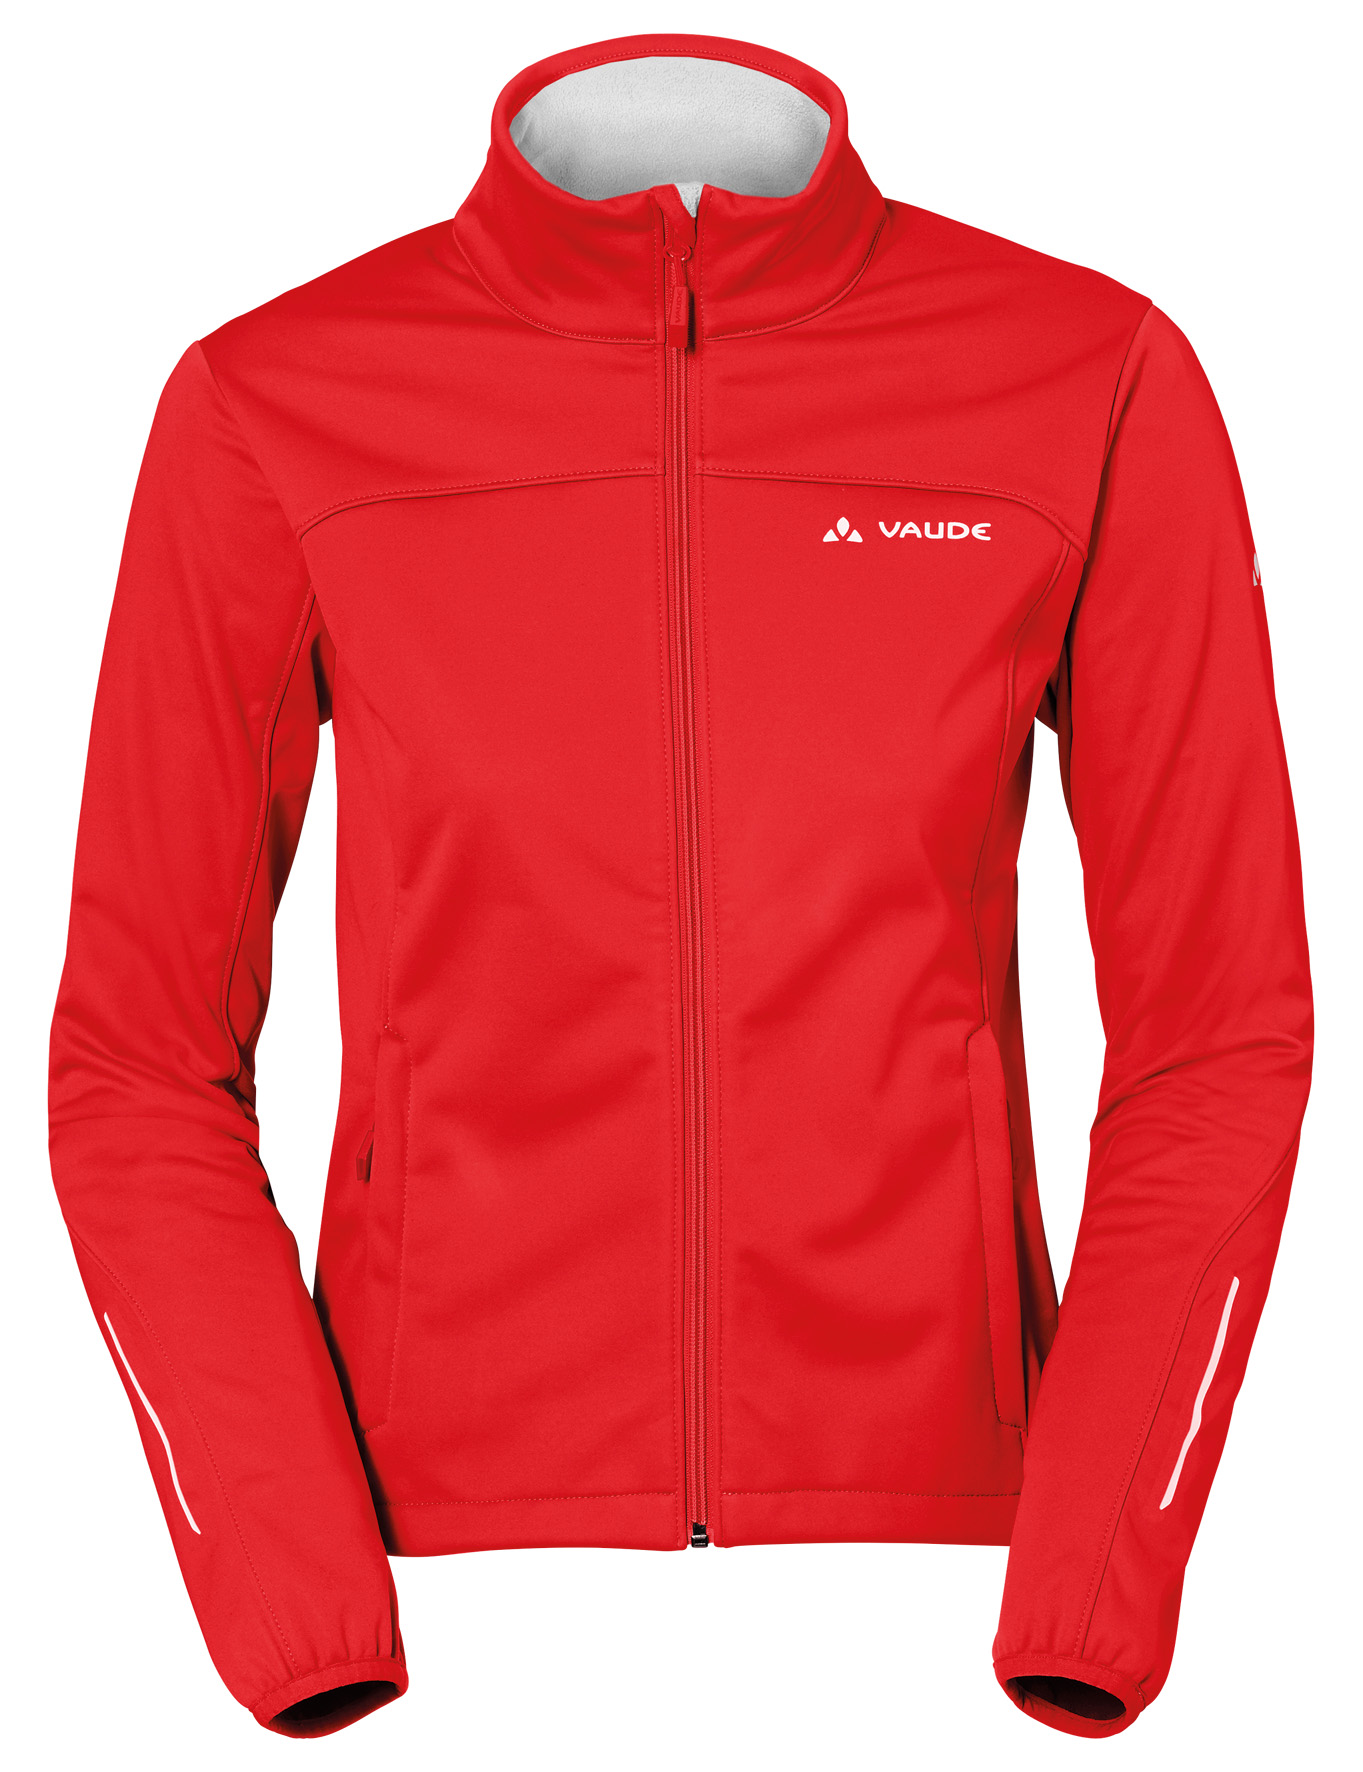 VAUDE Women´s Wintry Jacket III flame Größe 42 - schneider-sports